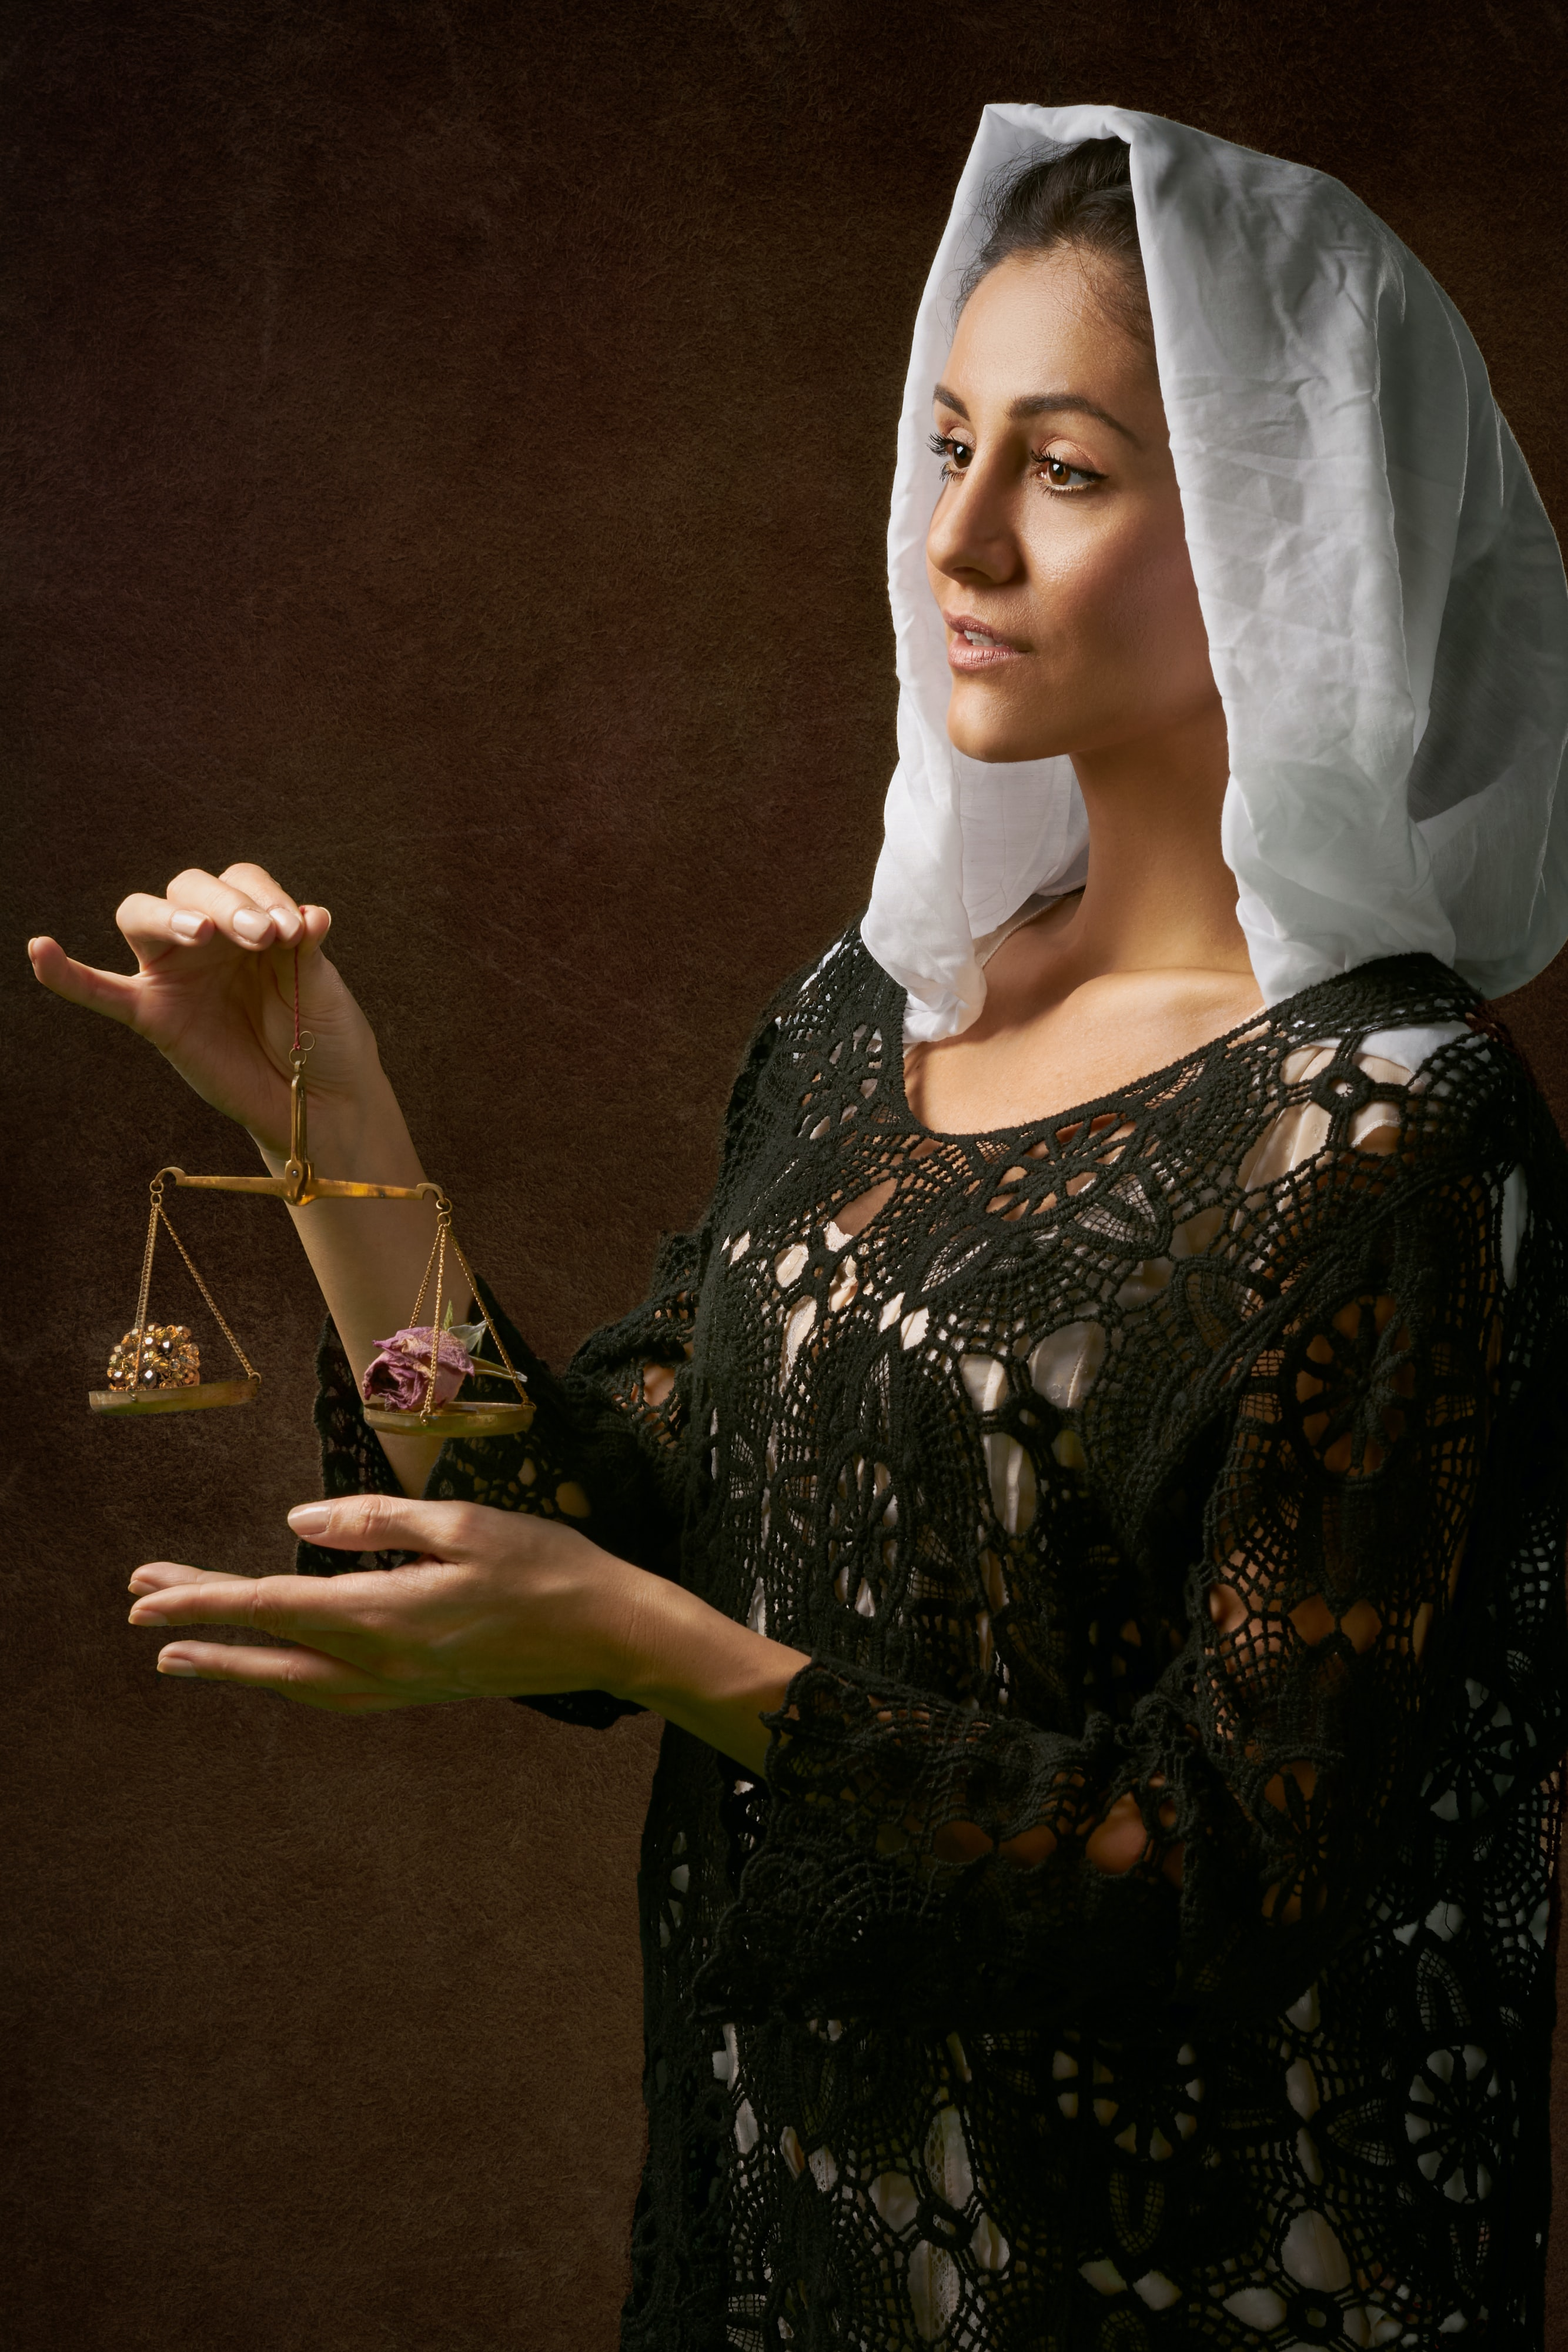 woman holding brass colored balance scale